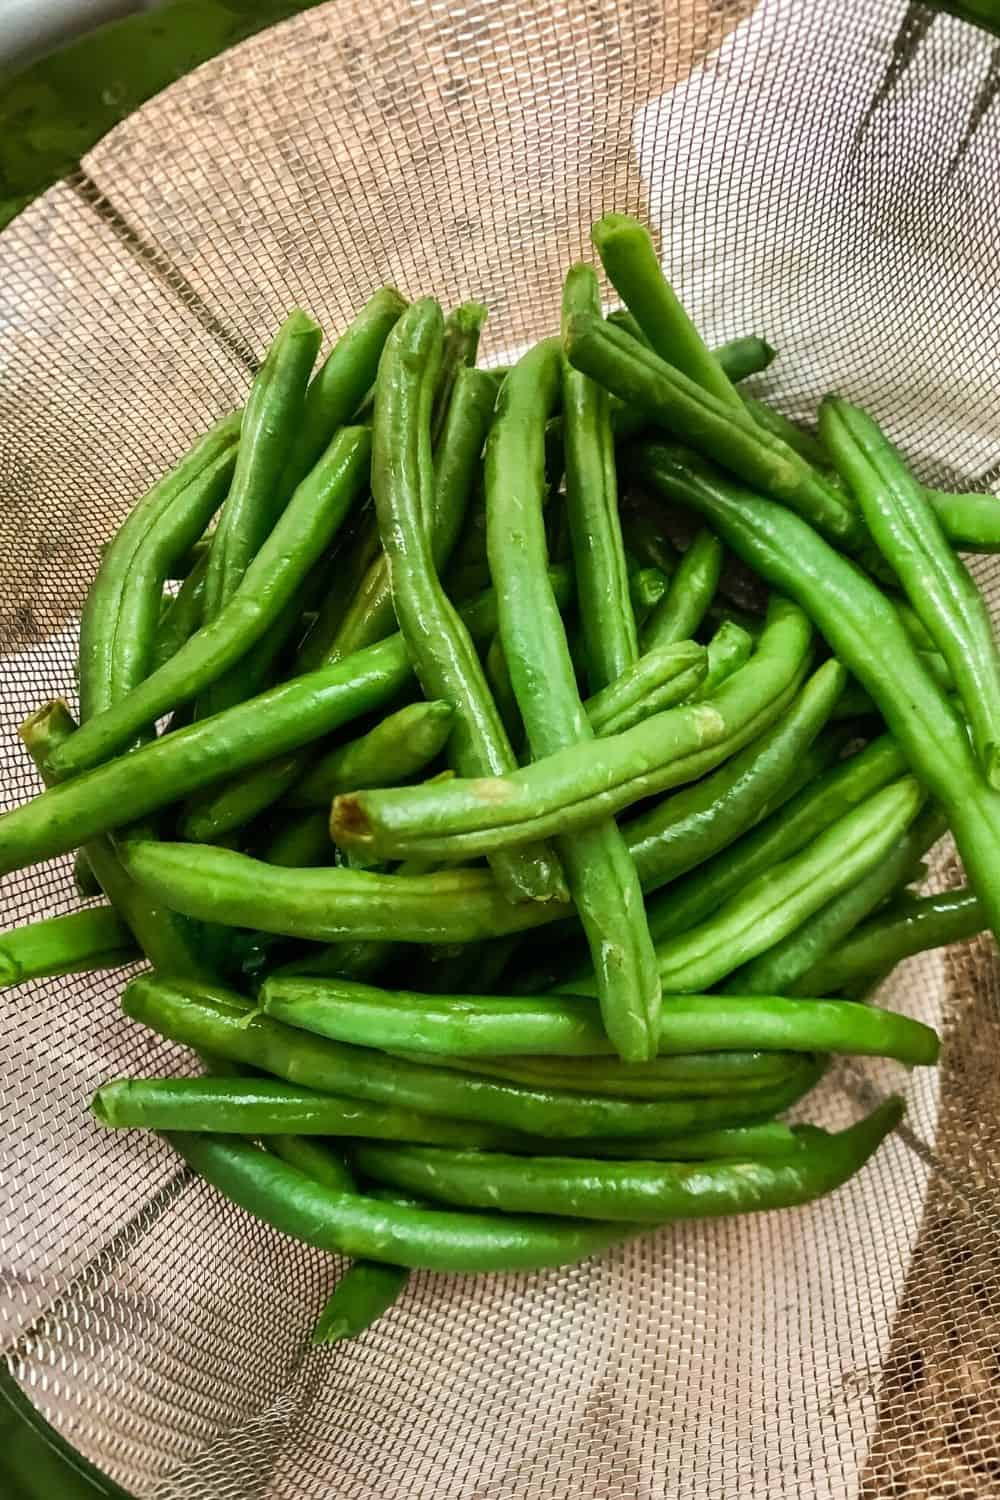 fresh green beans that have been washed and trimmed, placed in the steamer basket